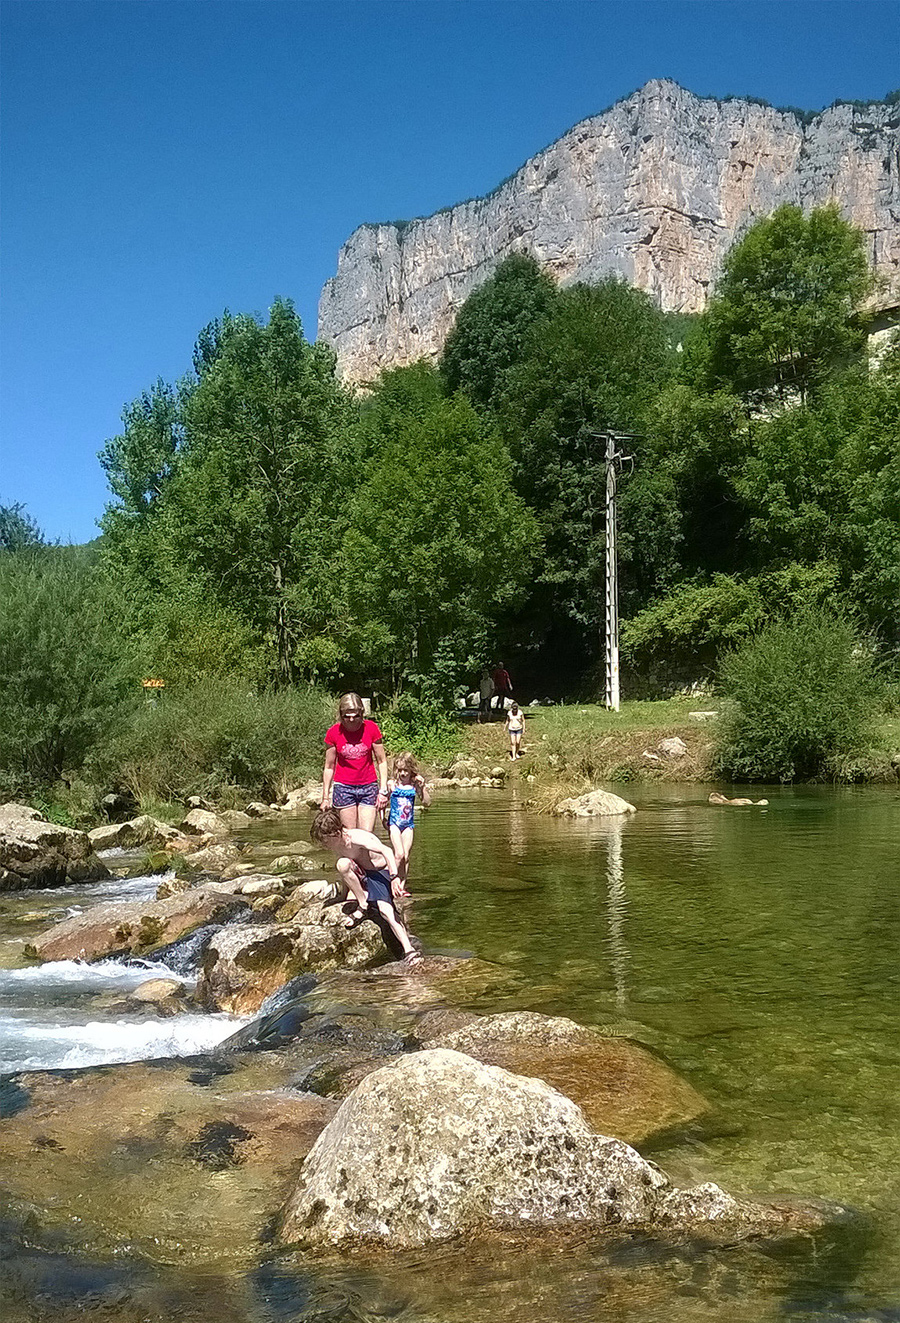 Wild swimming: Paddling in the Alpine river